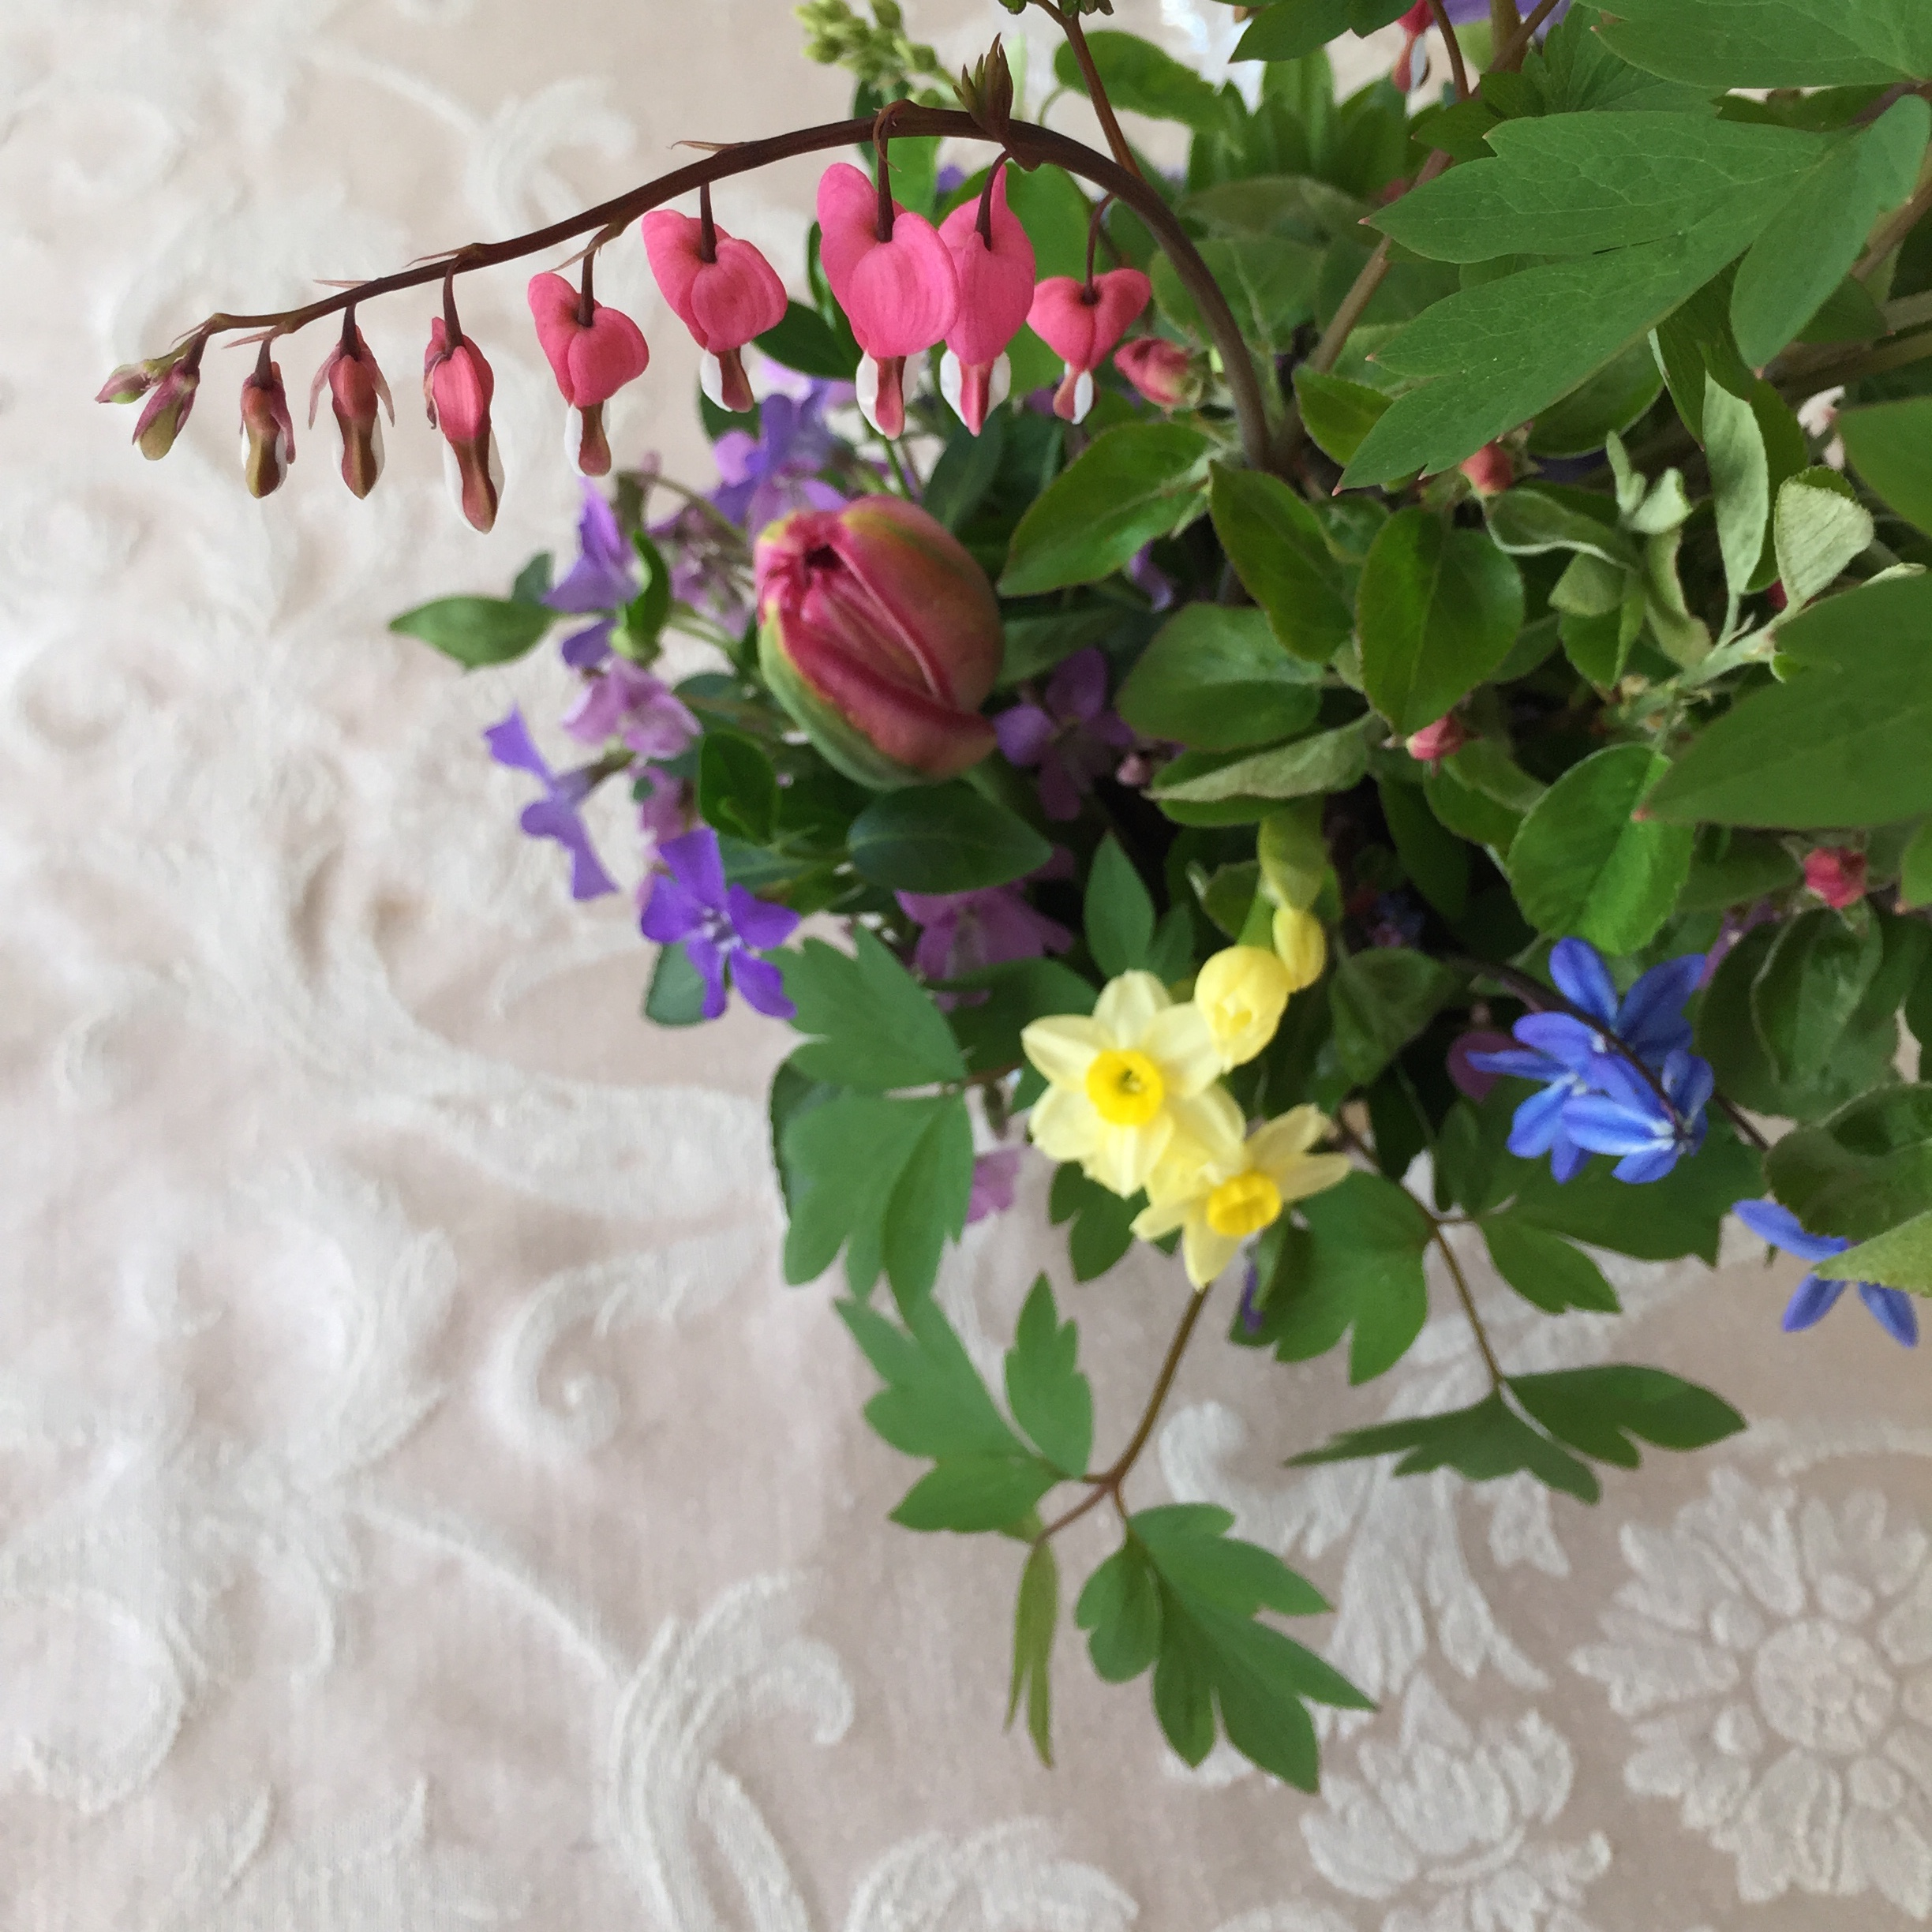 A small centerpiece featuring bleeding hearts, apple branches, 'Minnow' daffodils, blue scilla, vinca, violets, and the first'Angelique' tulip